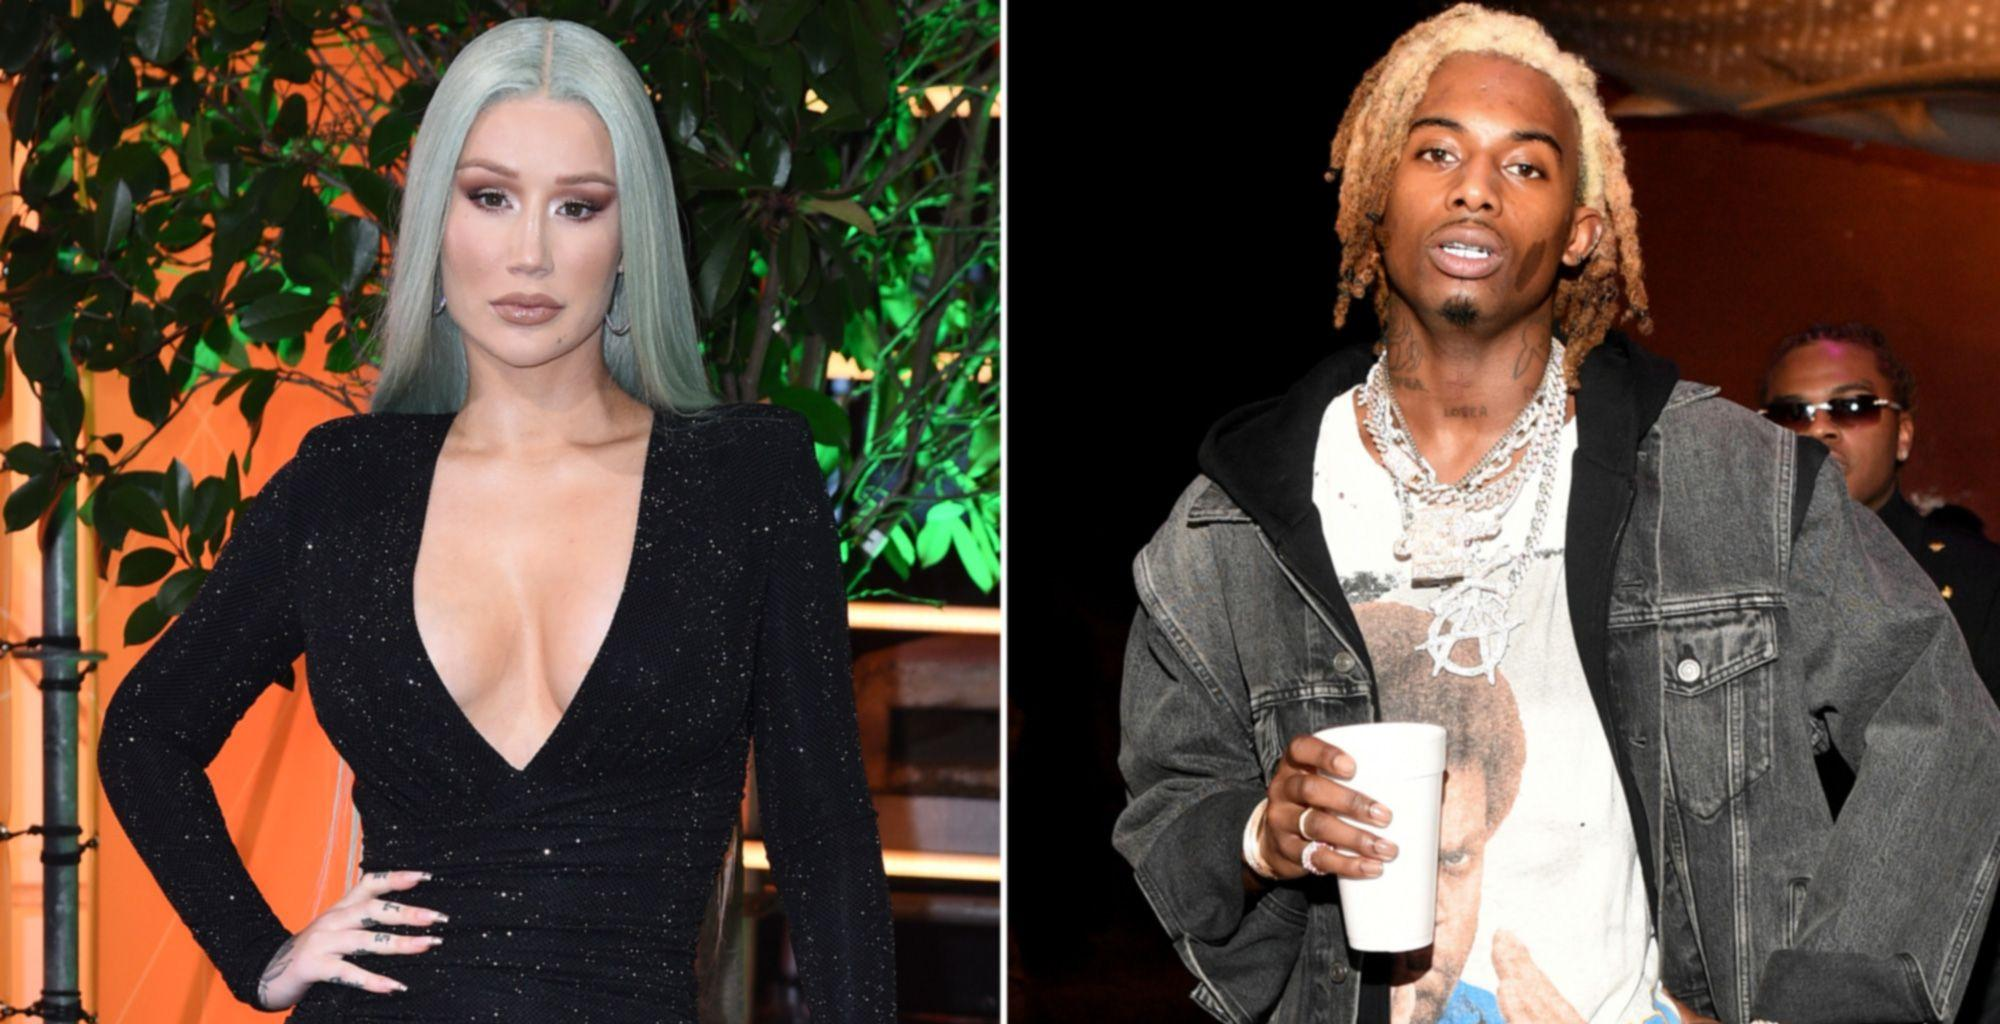 Iggy Azalea - Is She Ready To Date Again After Split From Baby Daddy Playboi Carti?